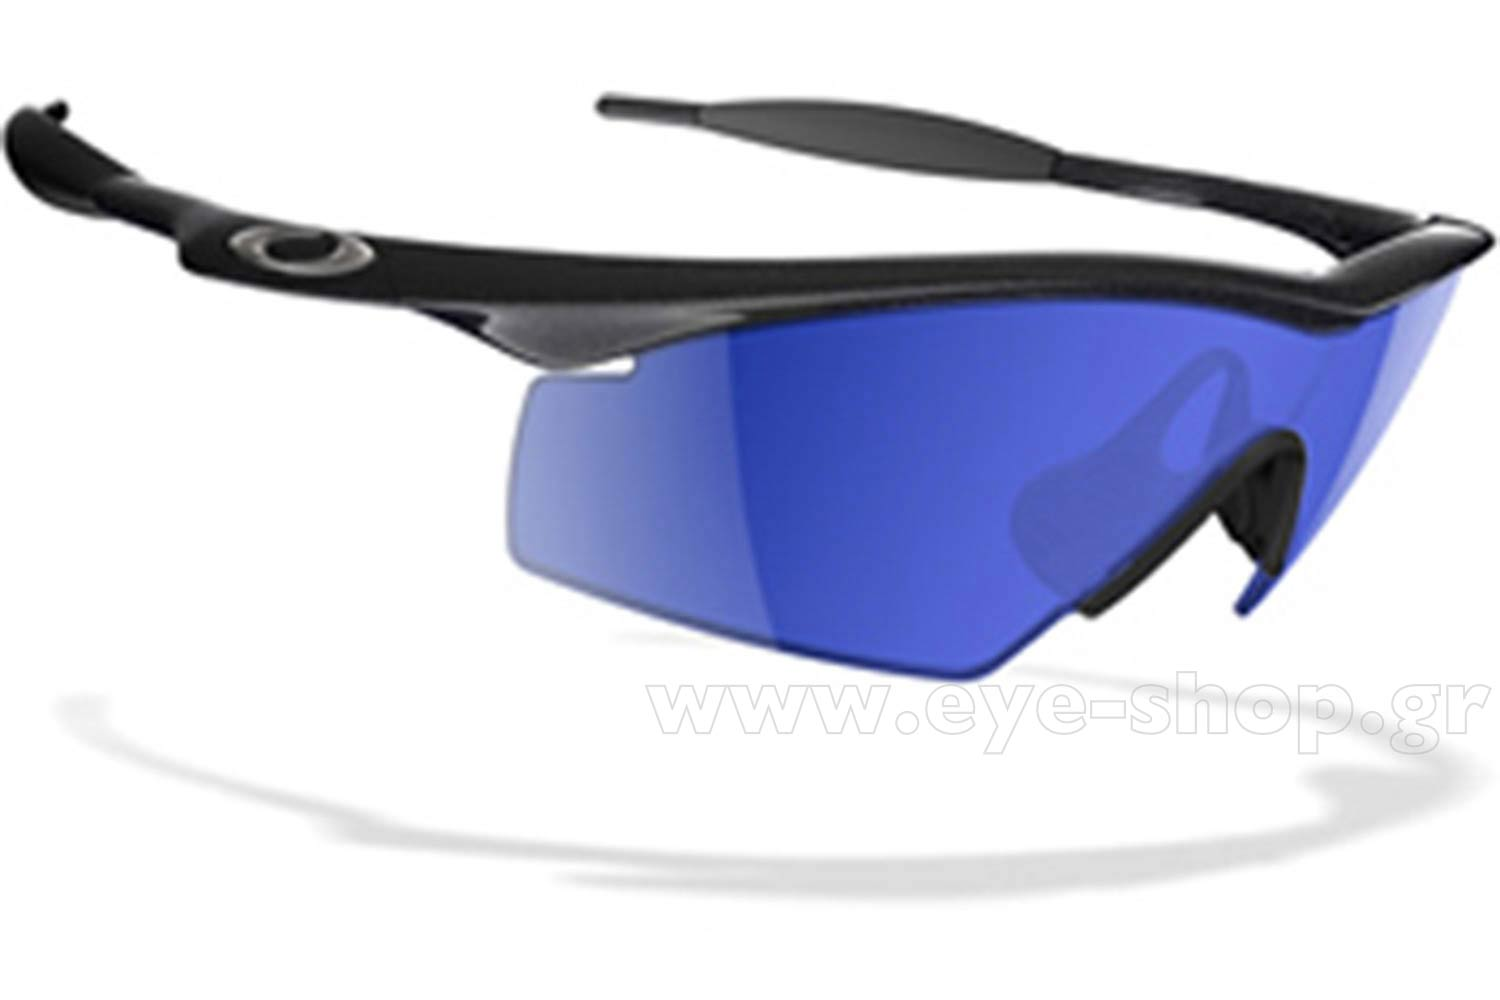 e28207d5b73 SUNGLASSES Oakley M-Frame Strike 9060 custom matteblack-Ice iridium